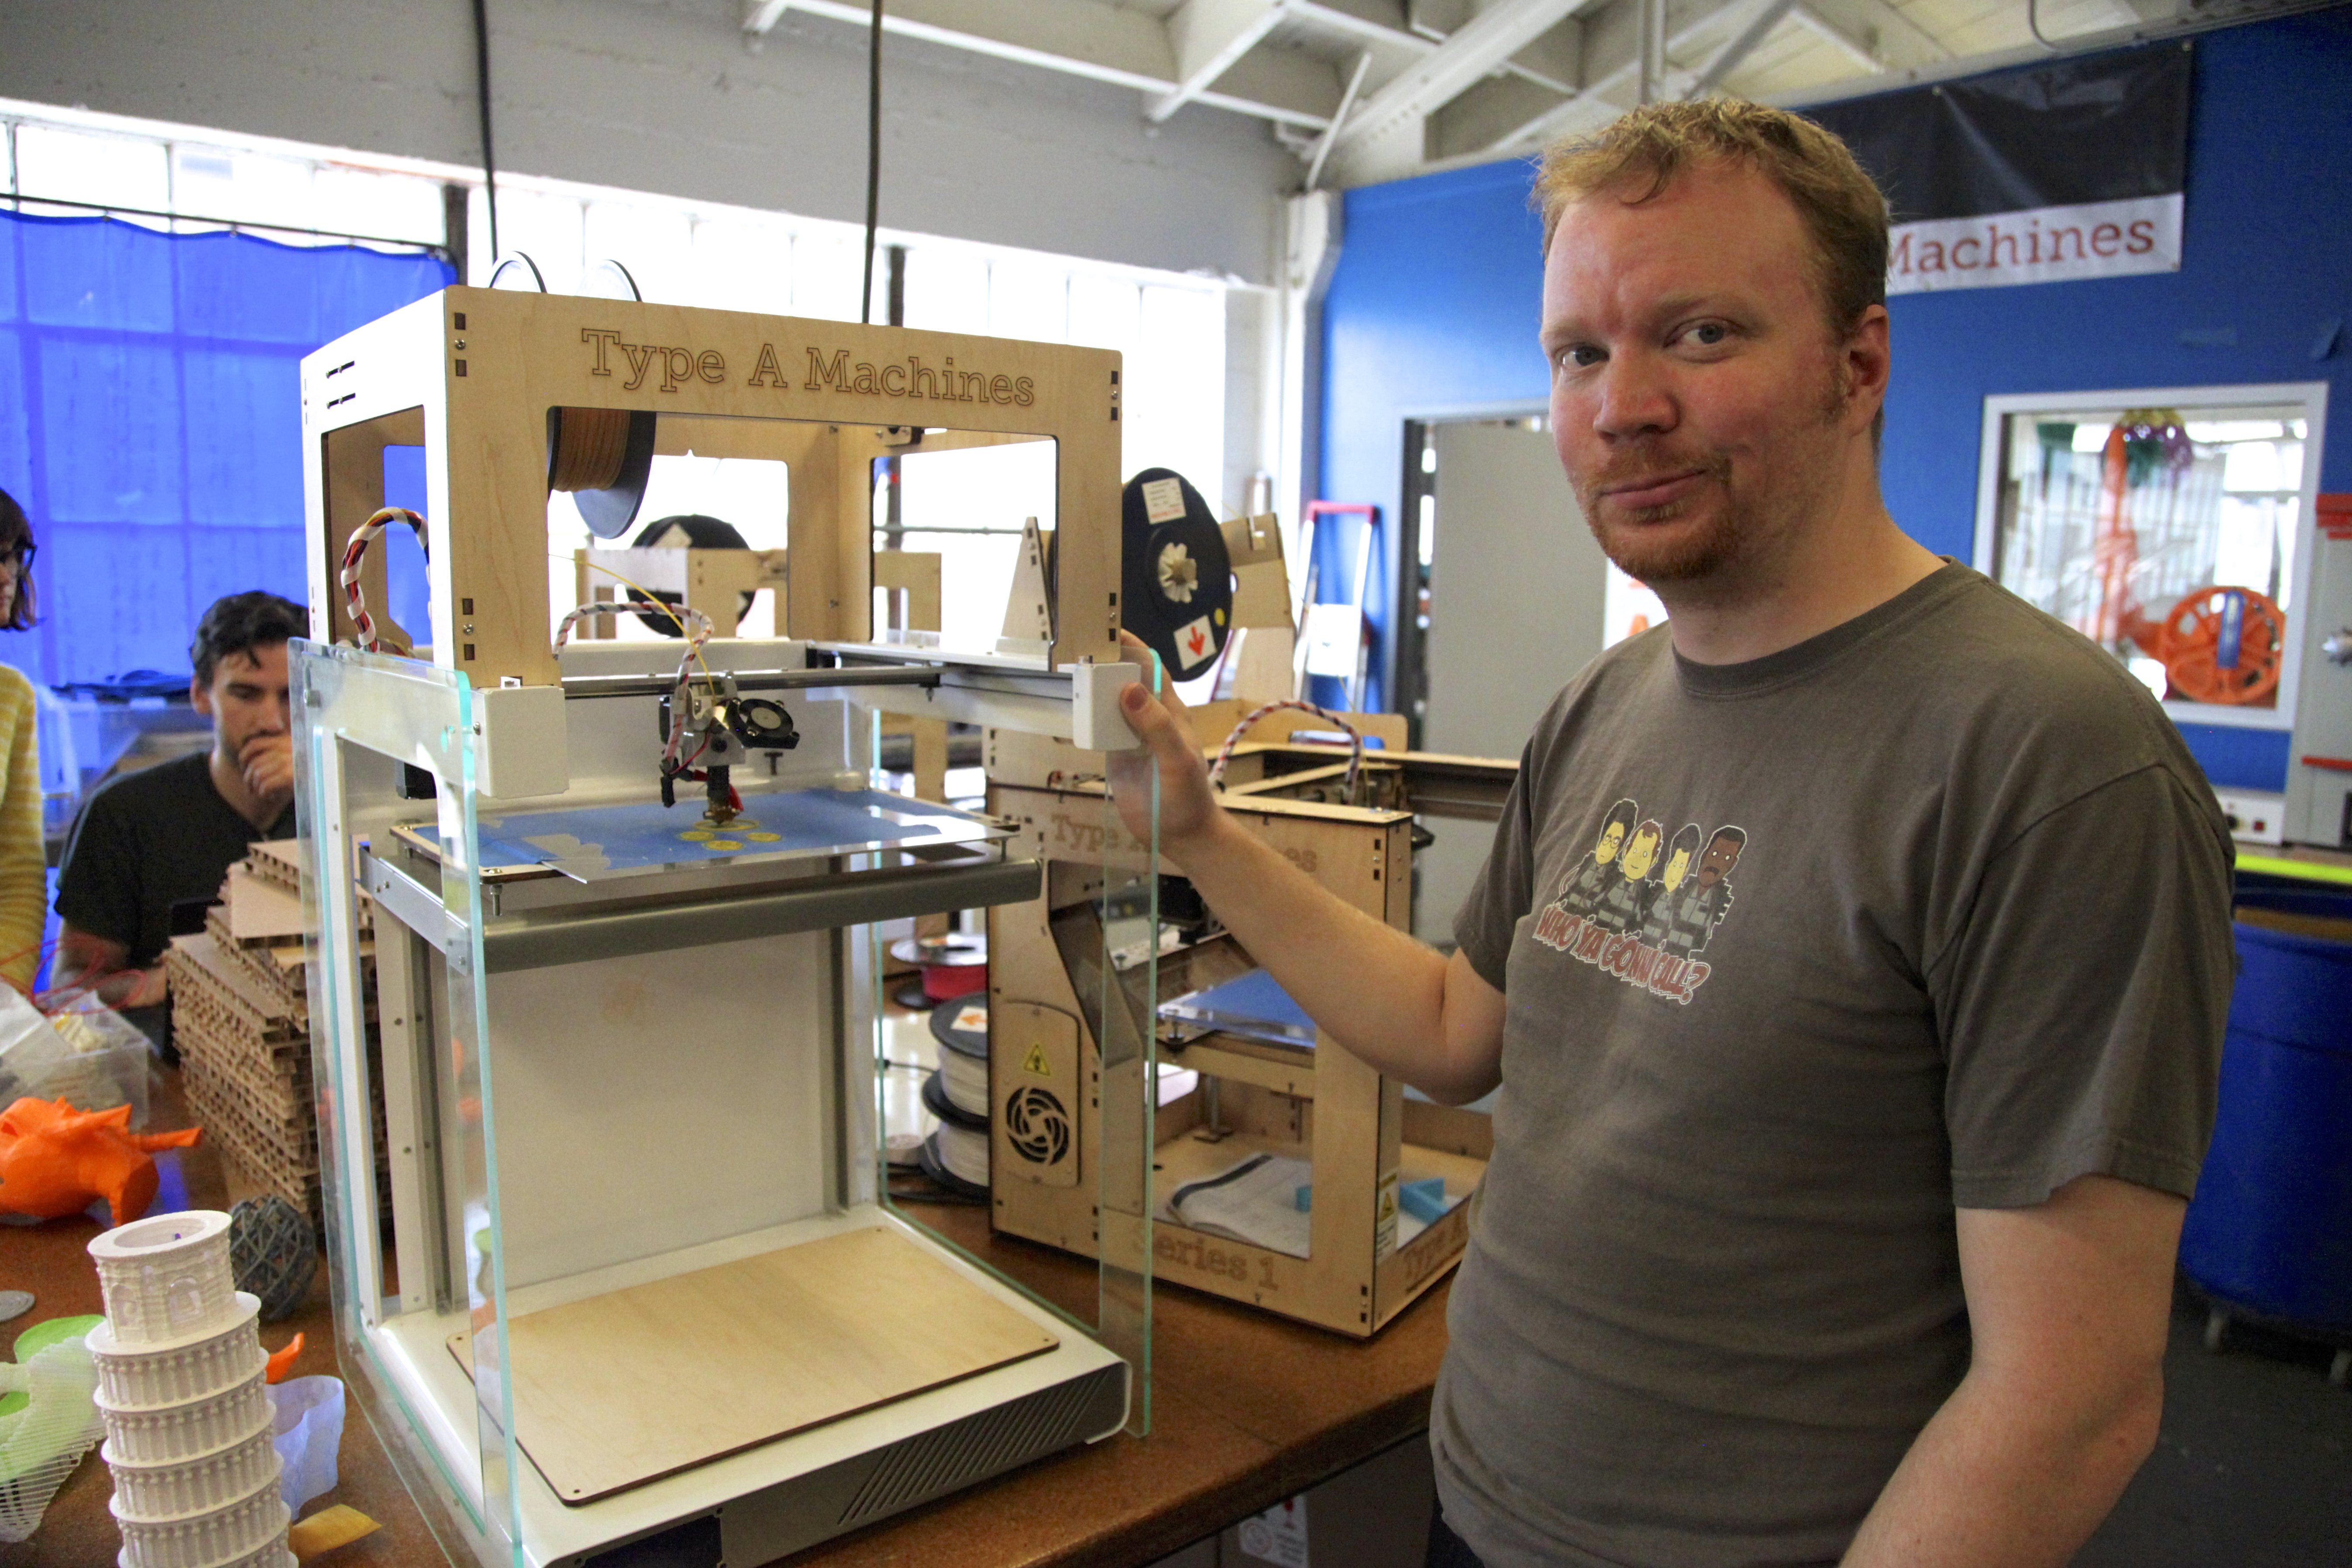 Type A Machines founder and CTO Andrew Rutter poses in their office with a Series 1 Pro 3D printer prototype. Photo by Signe Brewster